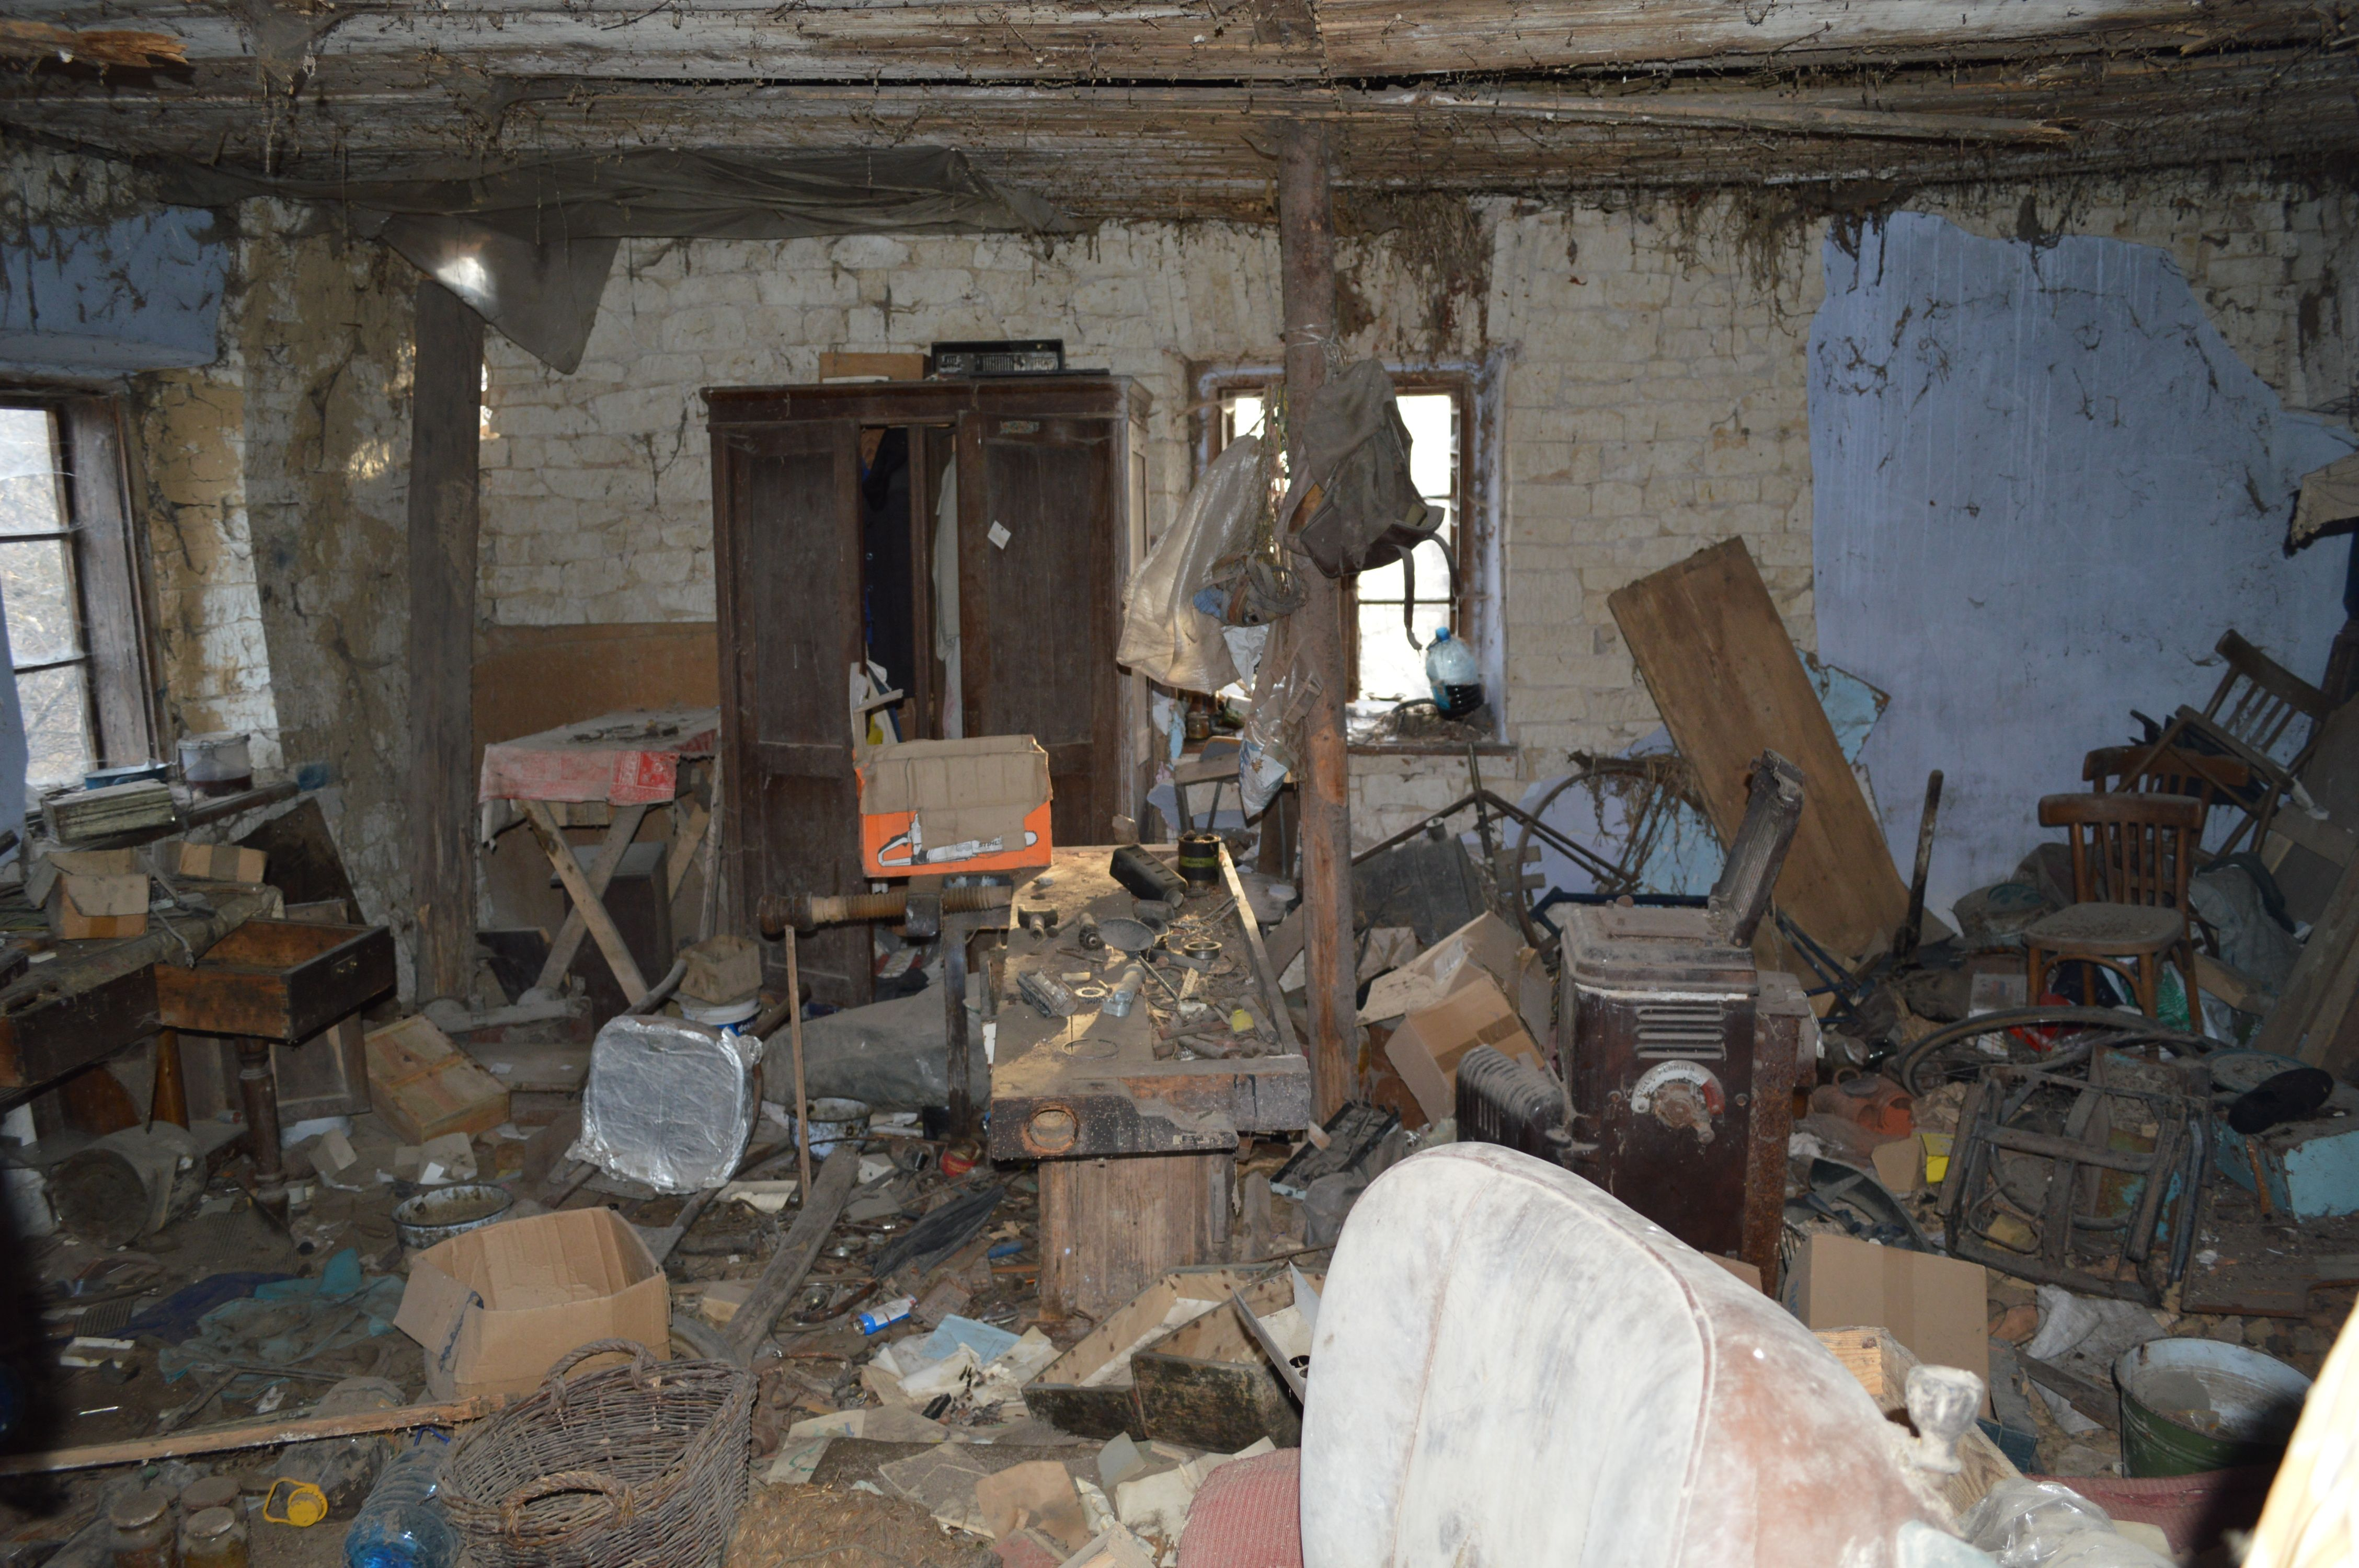 Inside the long abandoned 18/19th century brick farm house in the polish countryside...